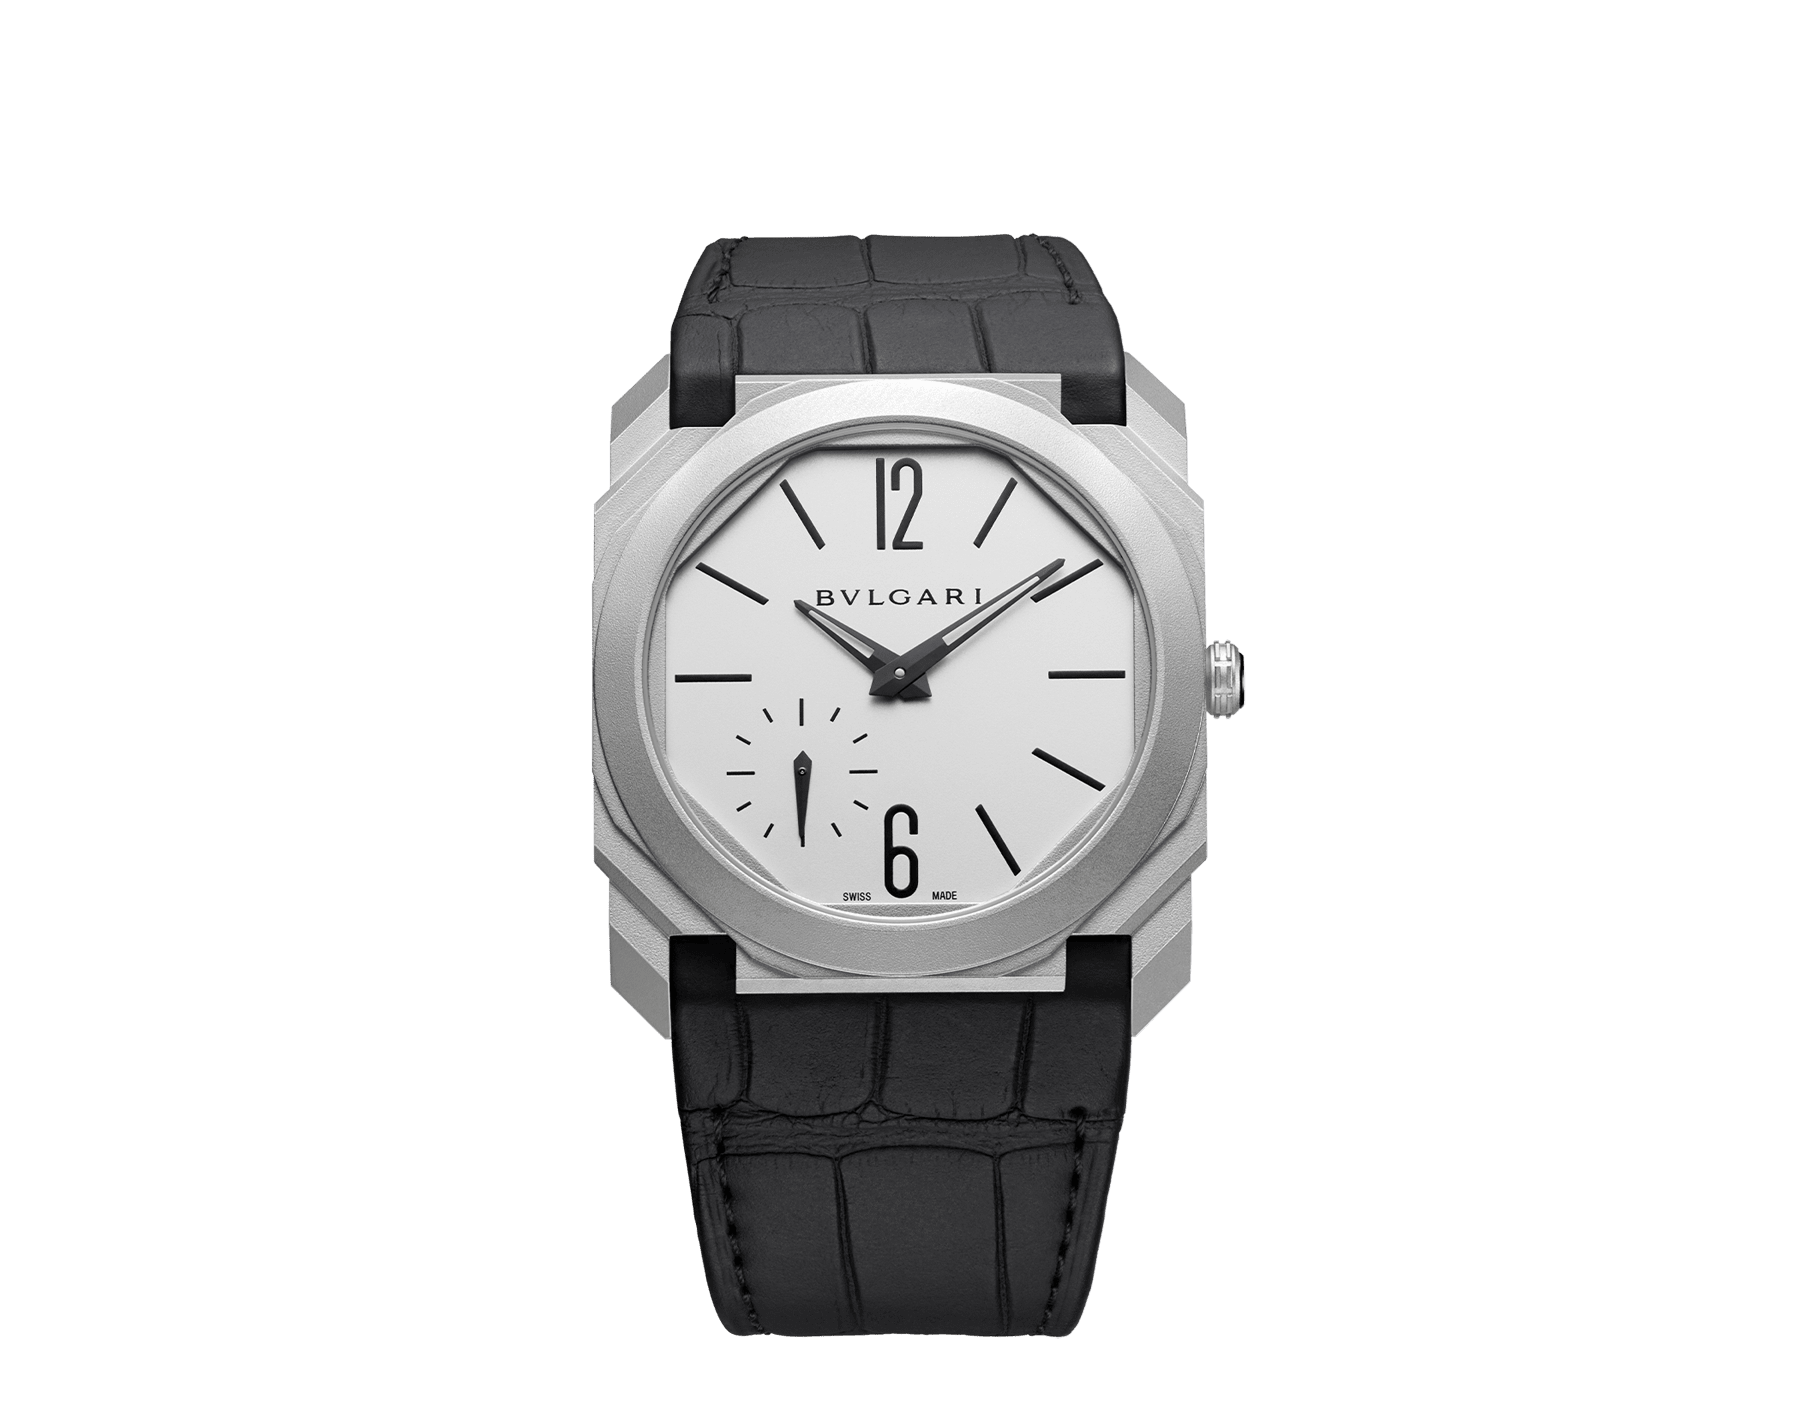 Octo Finissimo Automatic watch with mechanical manufacture movement, automatic winding, platinum microrotor, small seconds, extra-thin stainless steel case and dial, and black alligator bracelet 103035 image 1